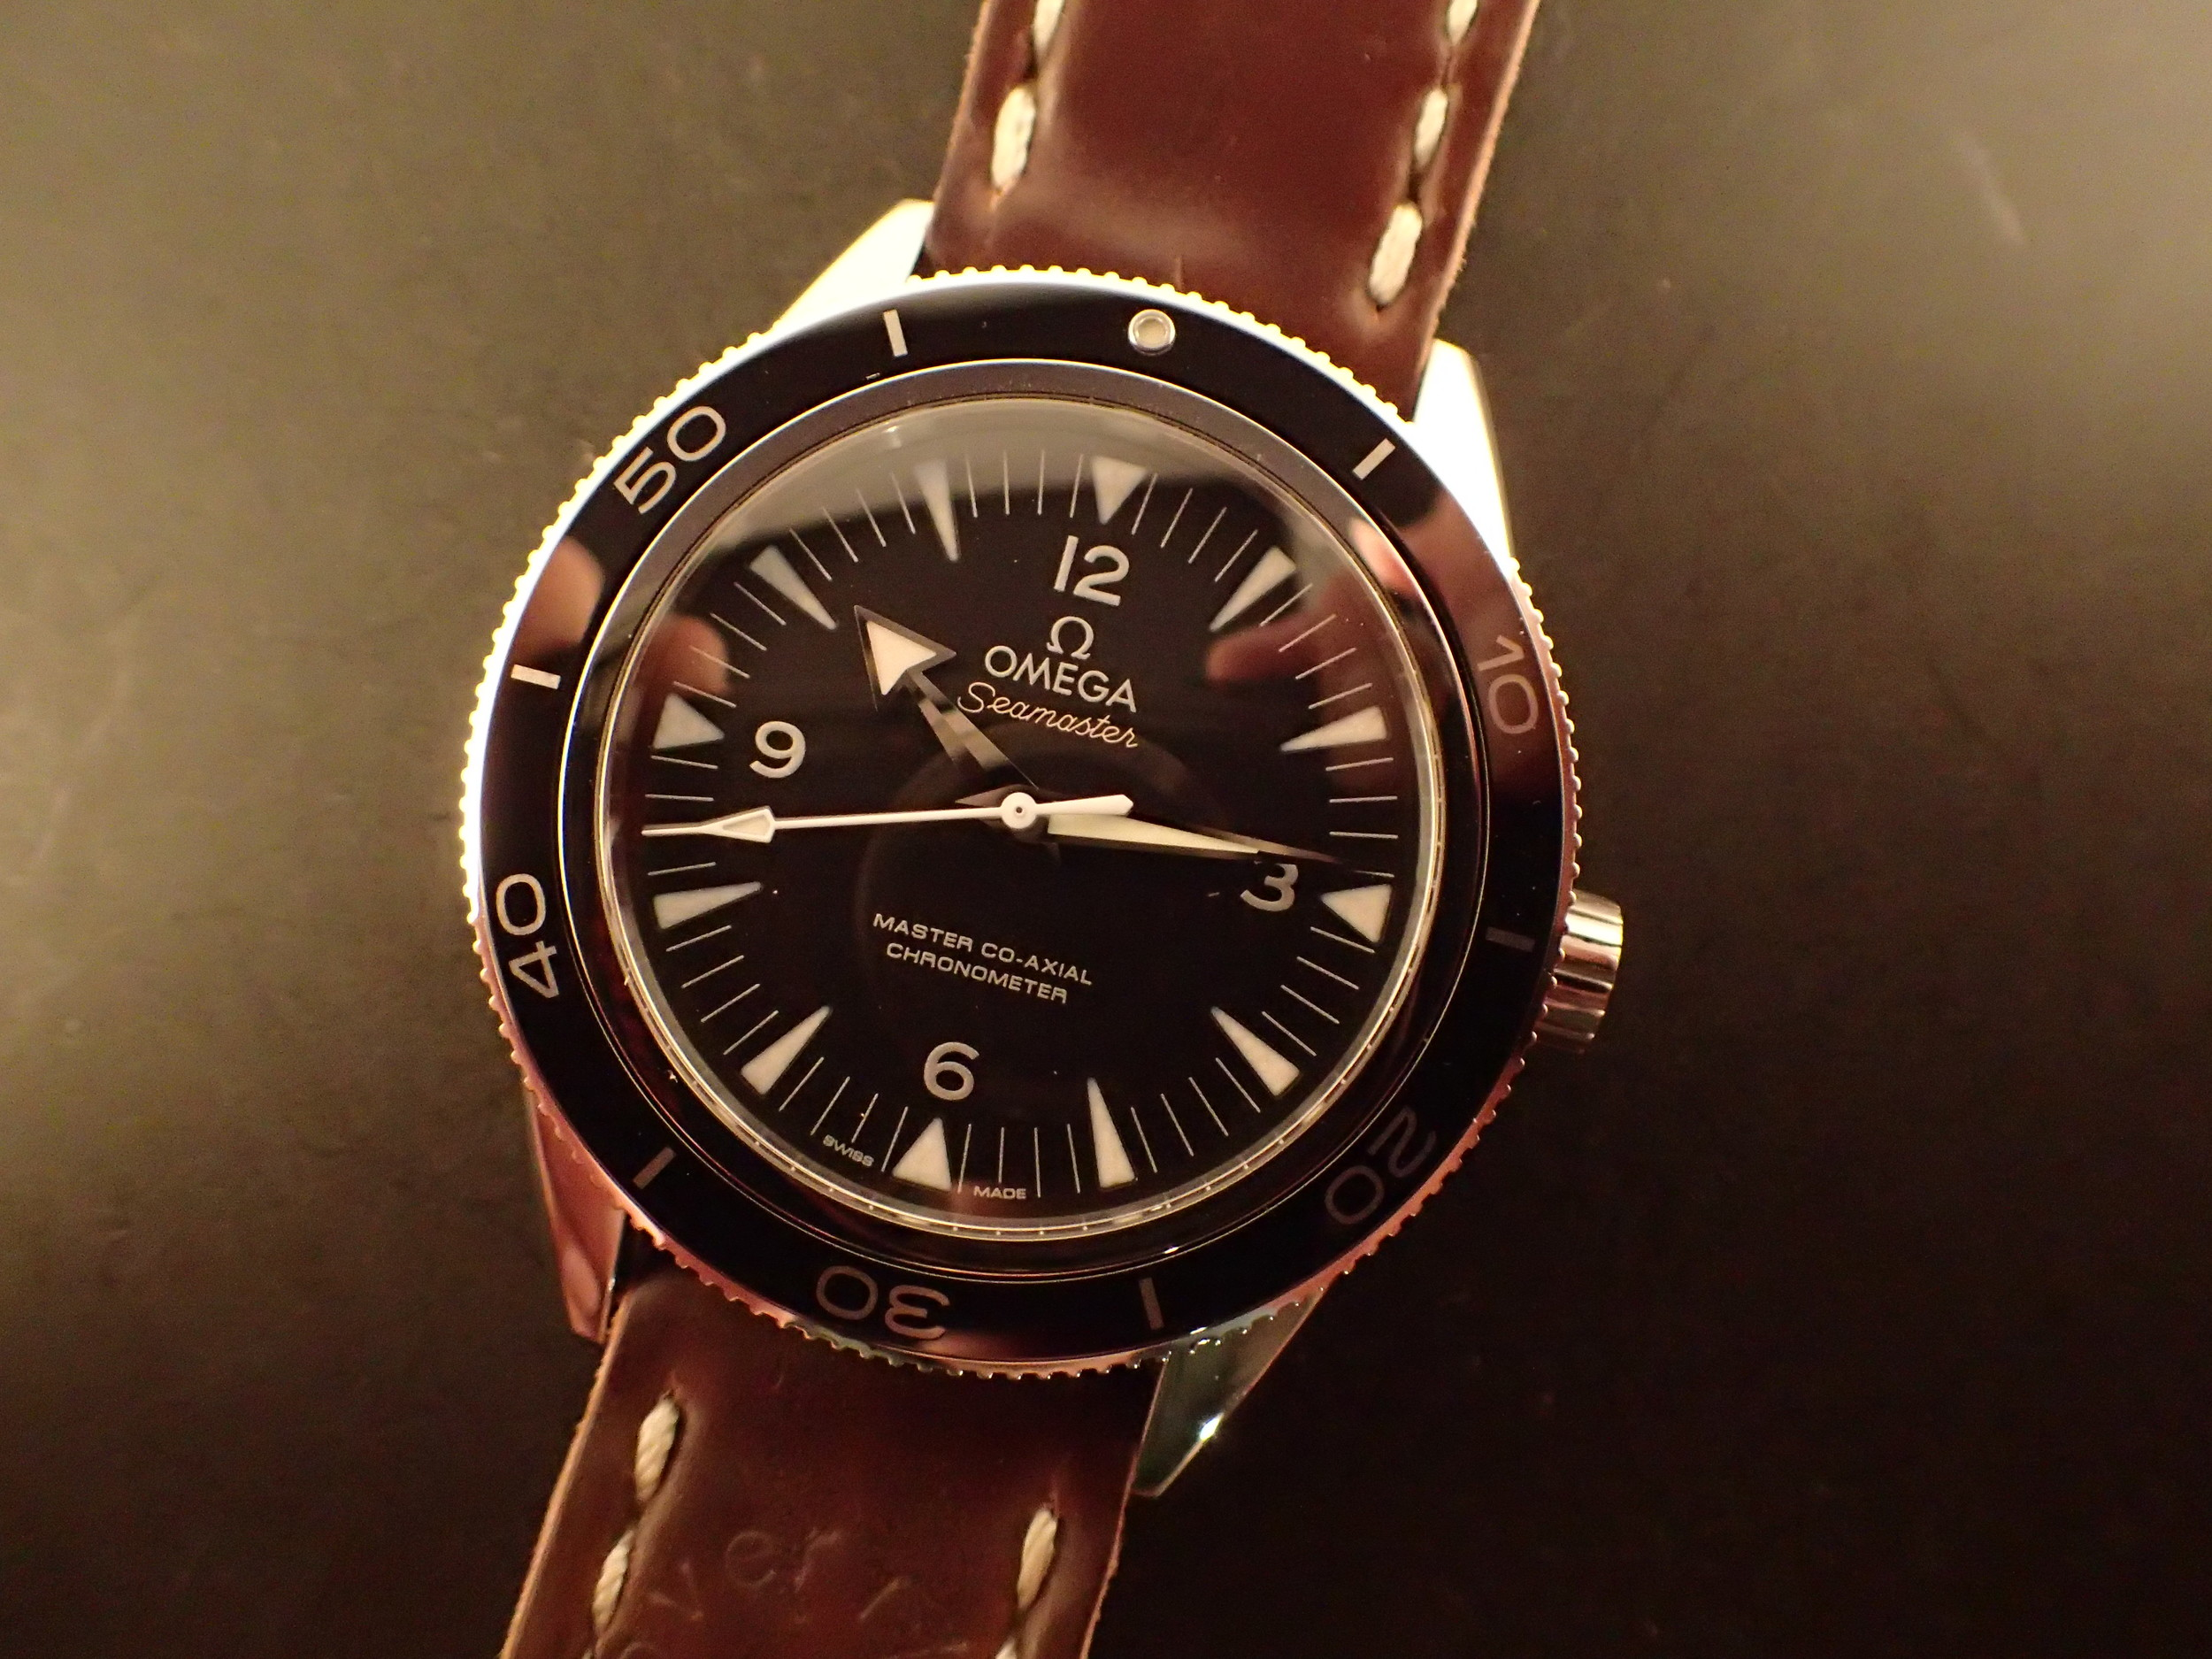 The Omega Seamaster 300 MCA.